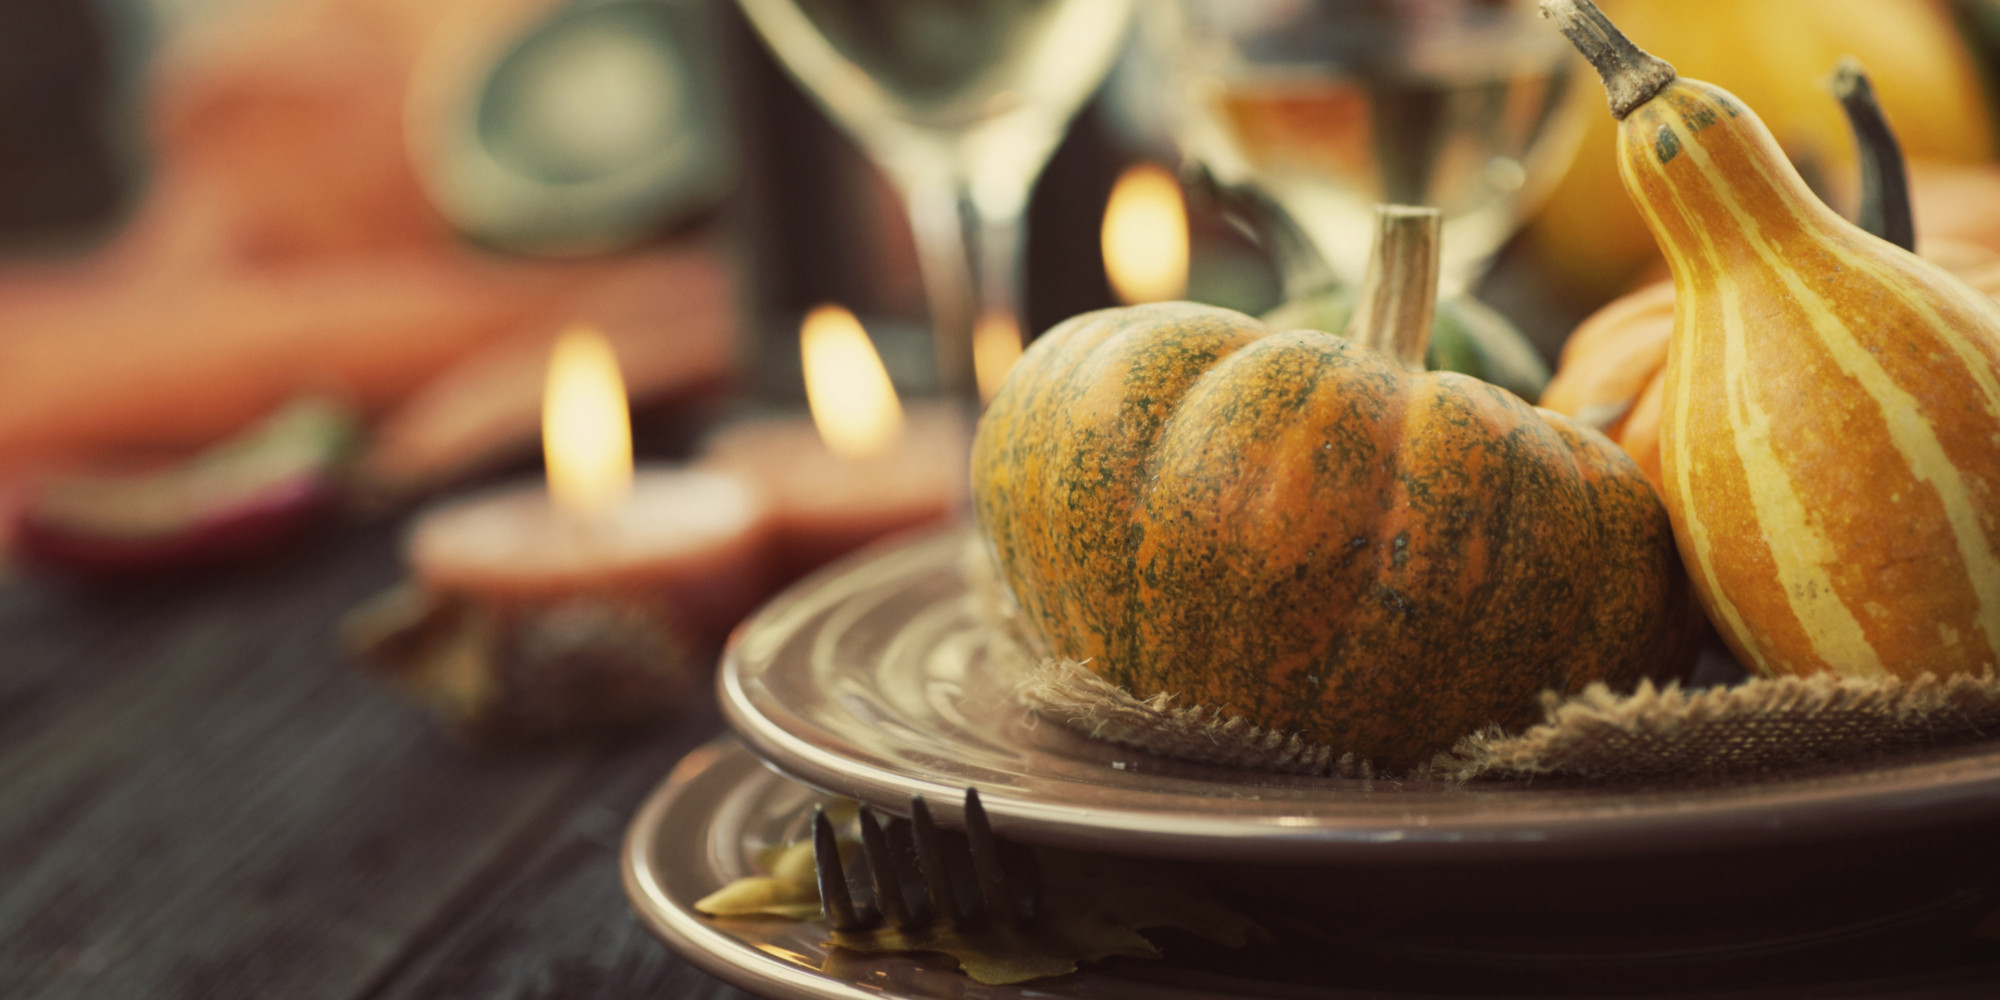 Fall Plate Wallpaper The Best Pinterest Boards For Thanksgiving Table Ideas